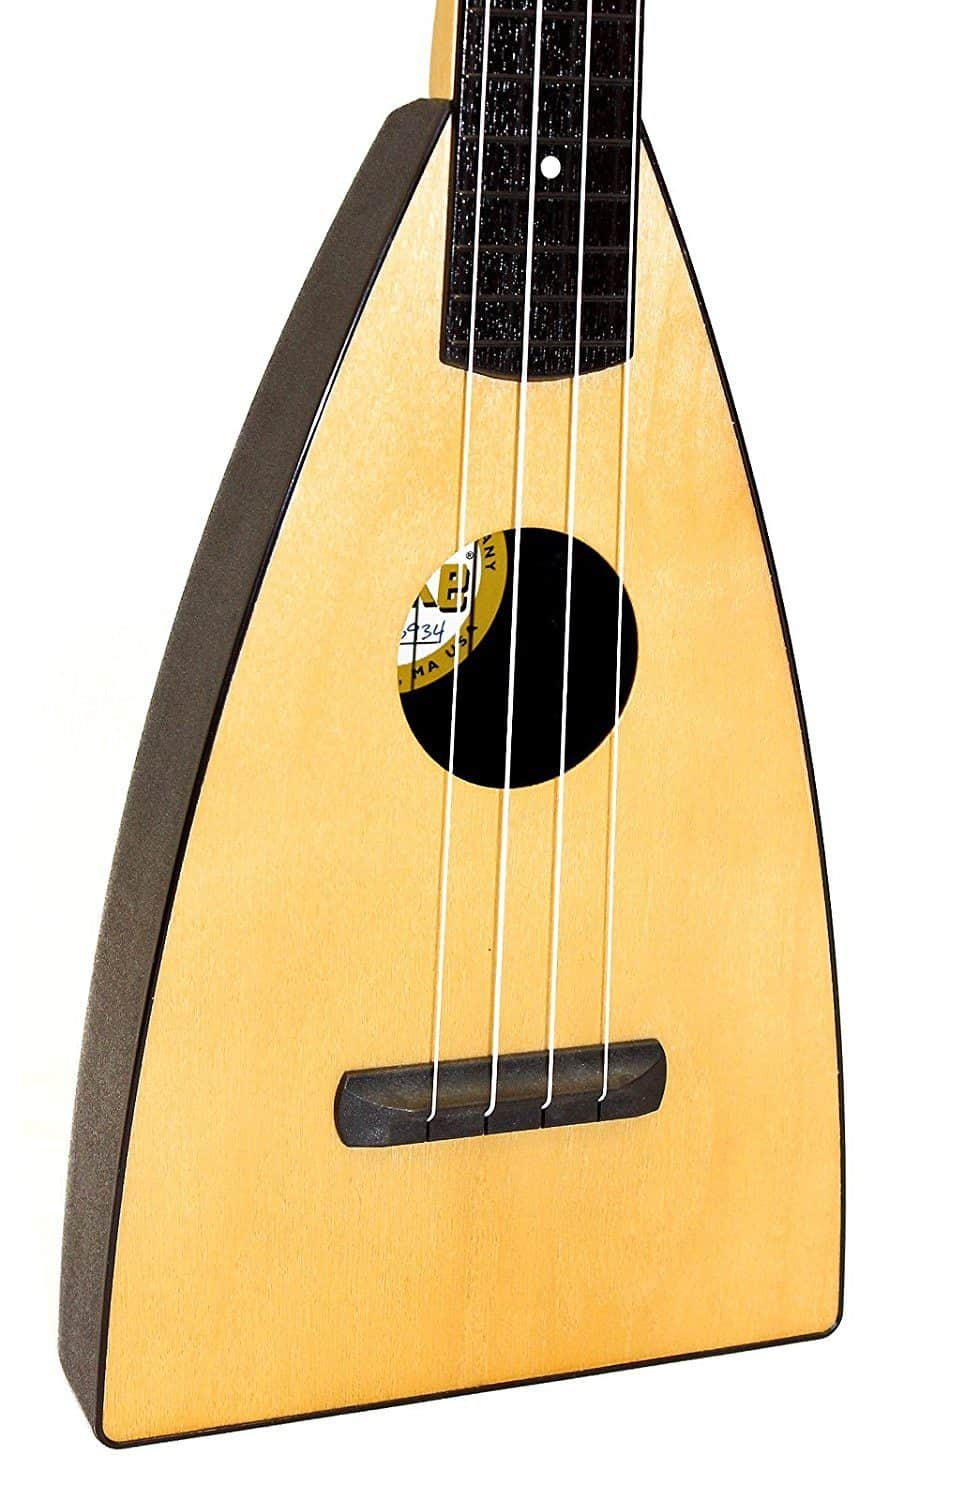 Magic Fluke Ukulele